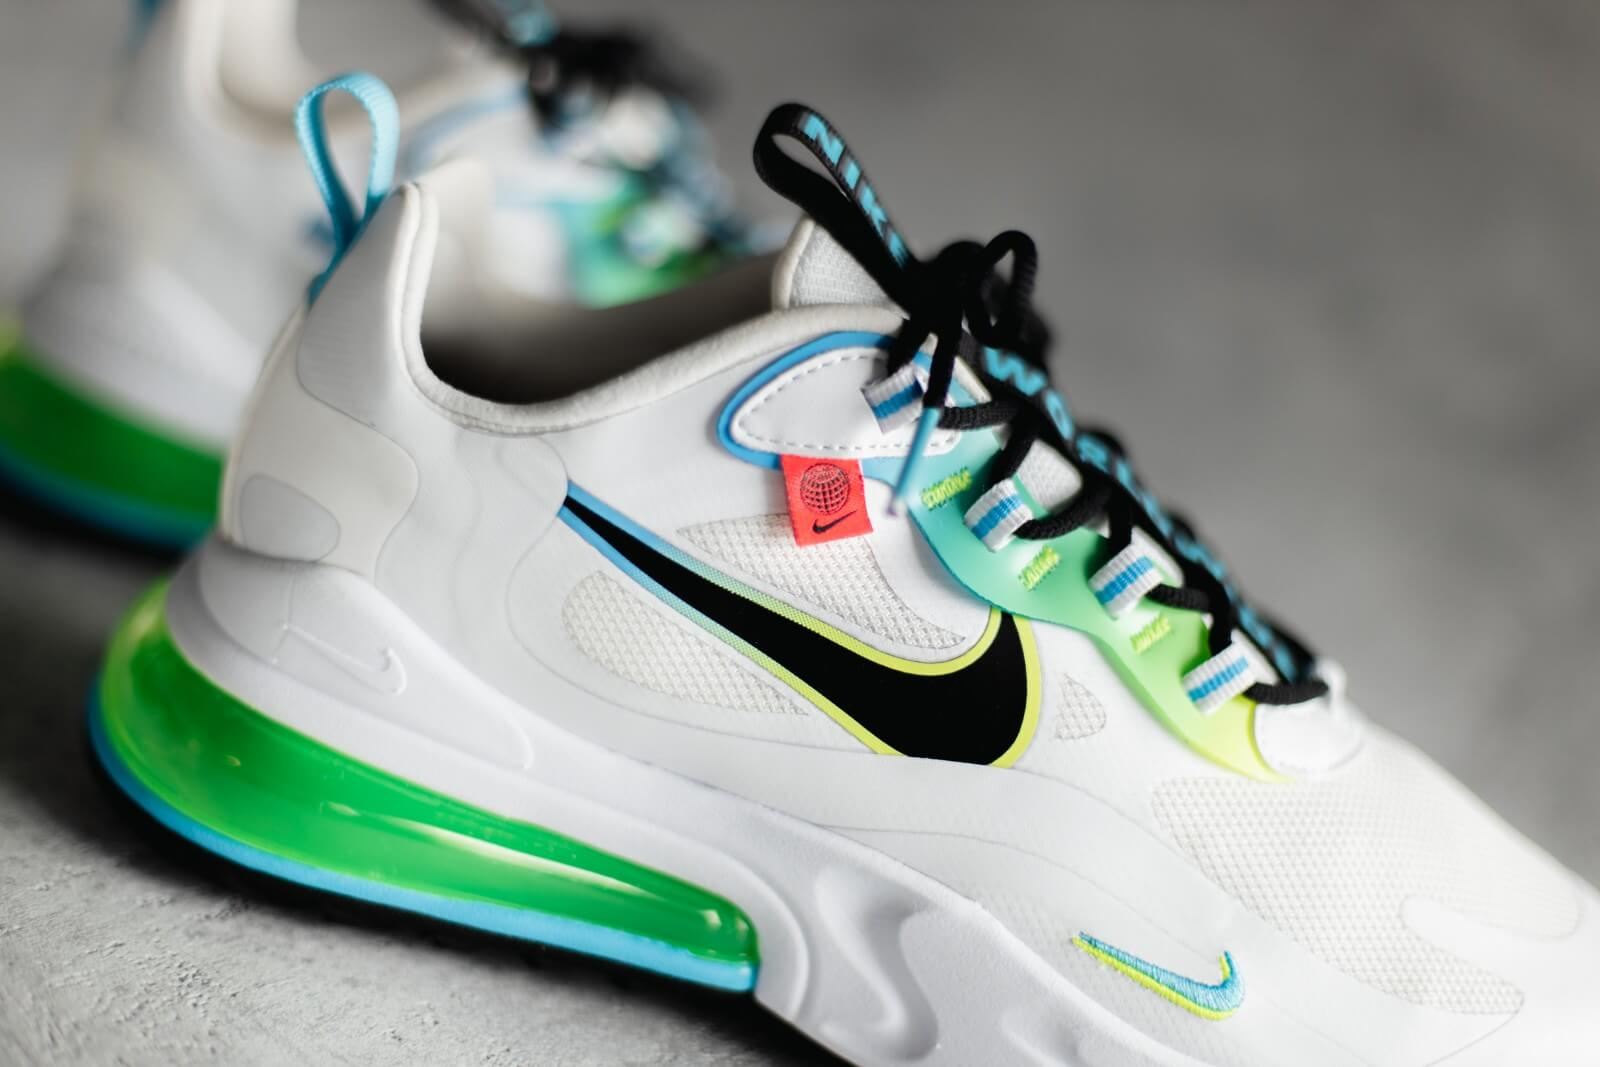 Nike Air Max 270 React SE Worldwide Pack White/Black-Blue Fury